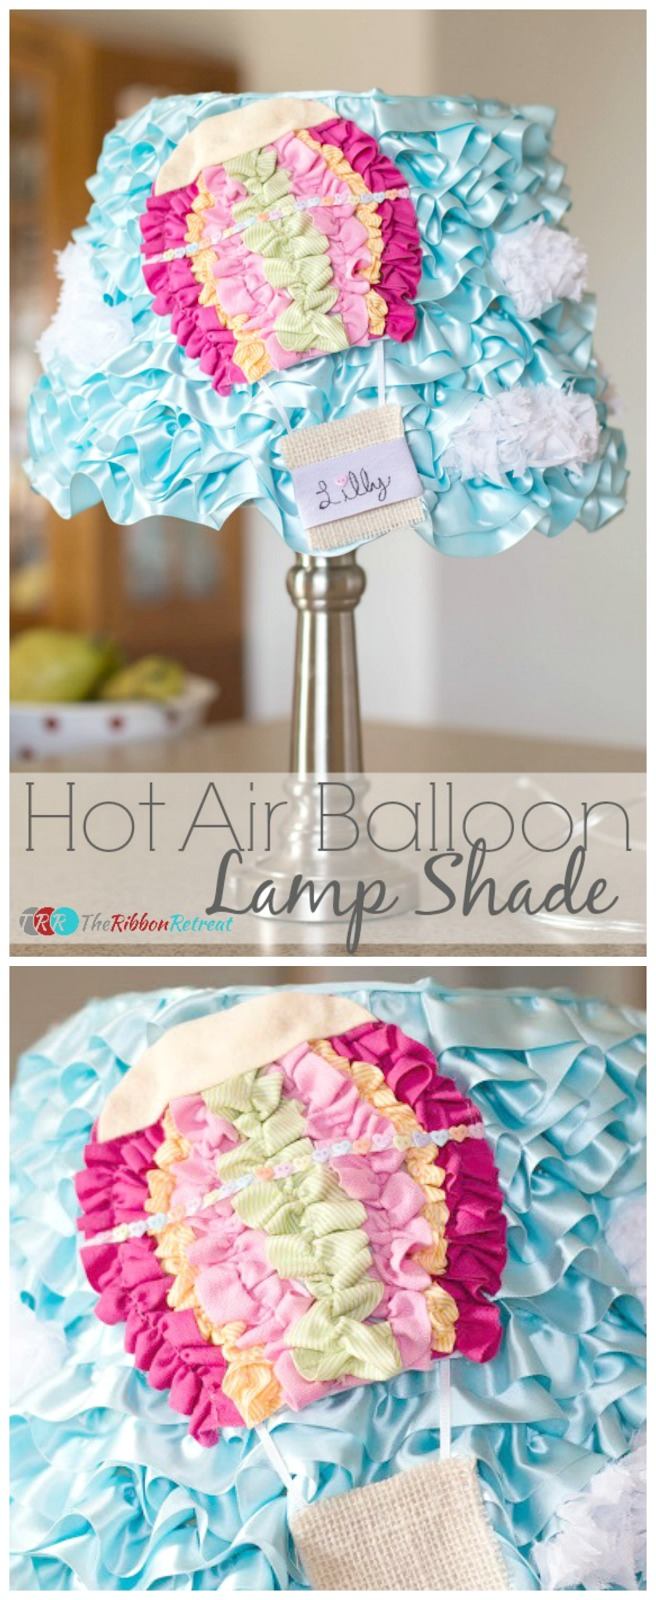 Easy DIY Hot Air Balloon Lamp Shade tutorial